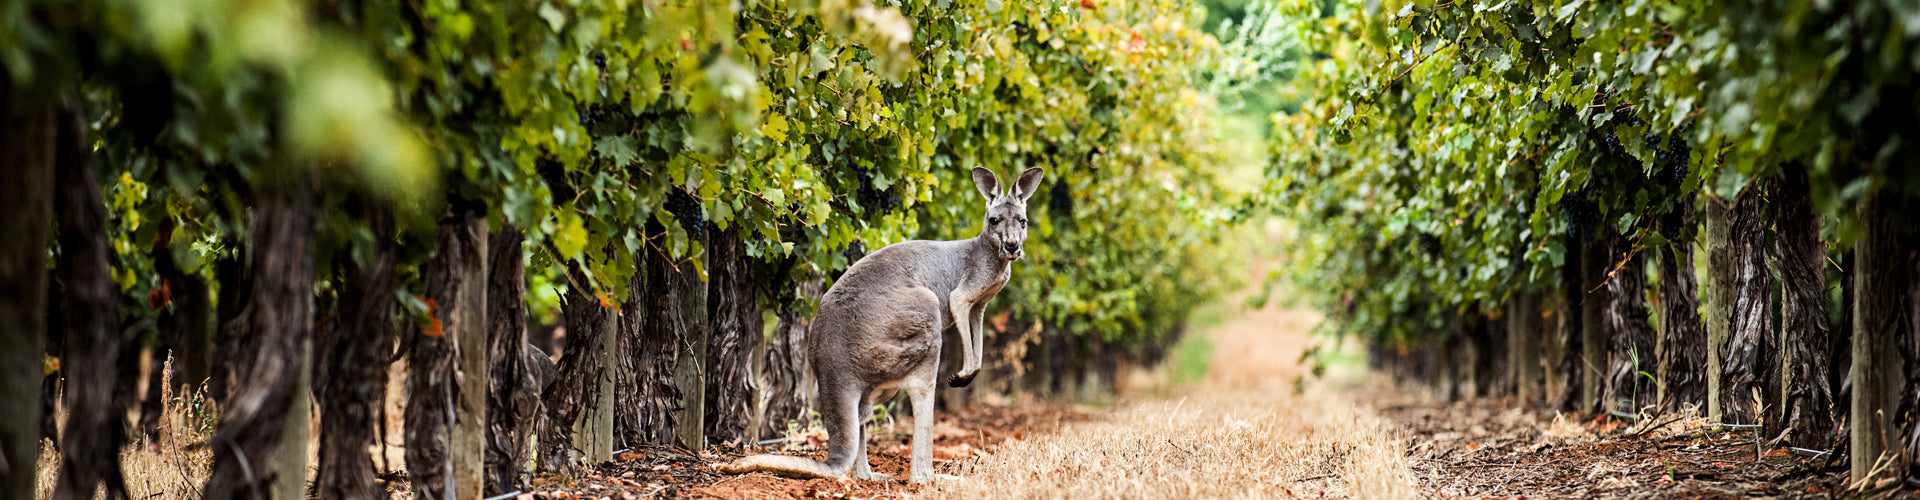 Kangaroo in the vineyards at Deakin Estate